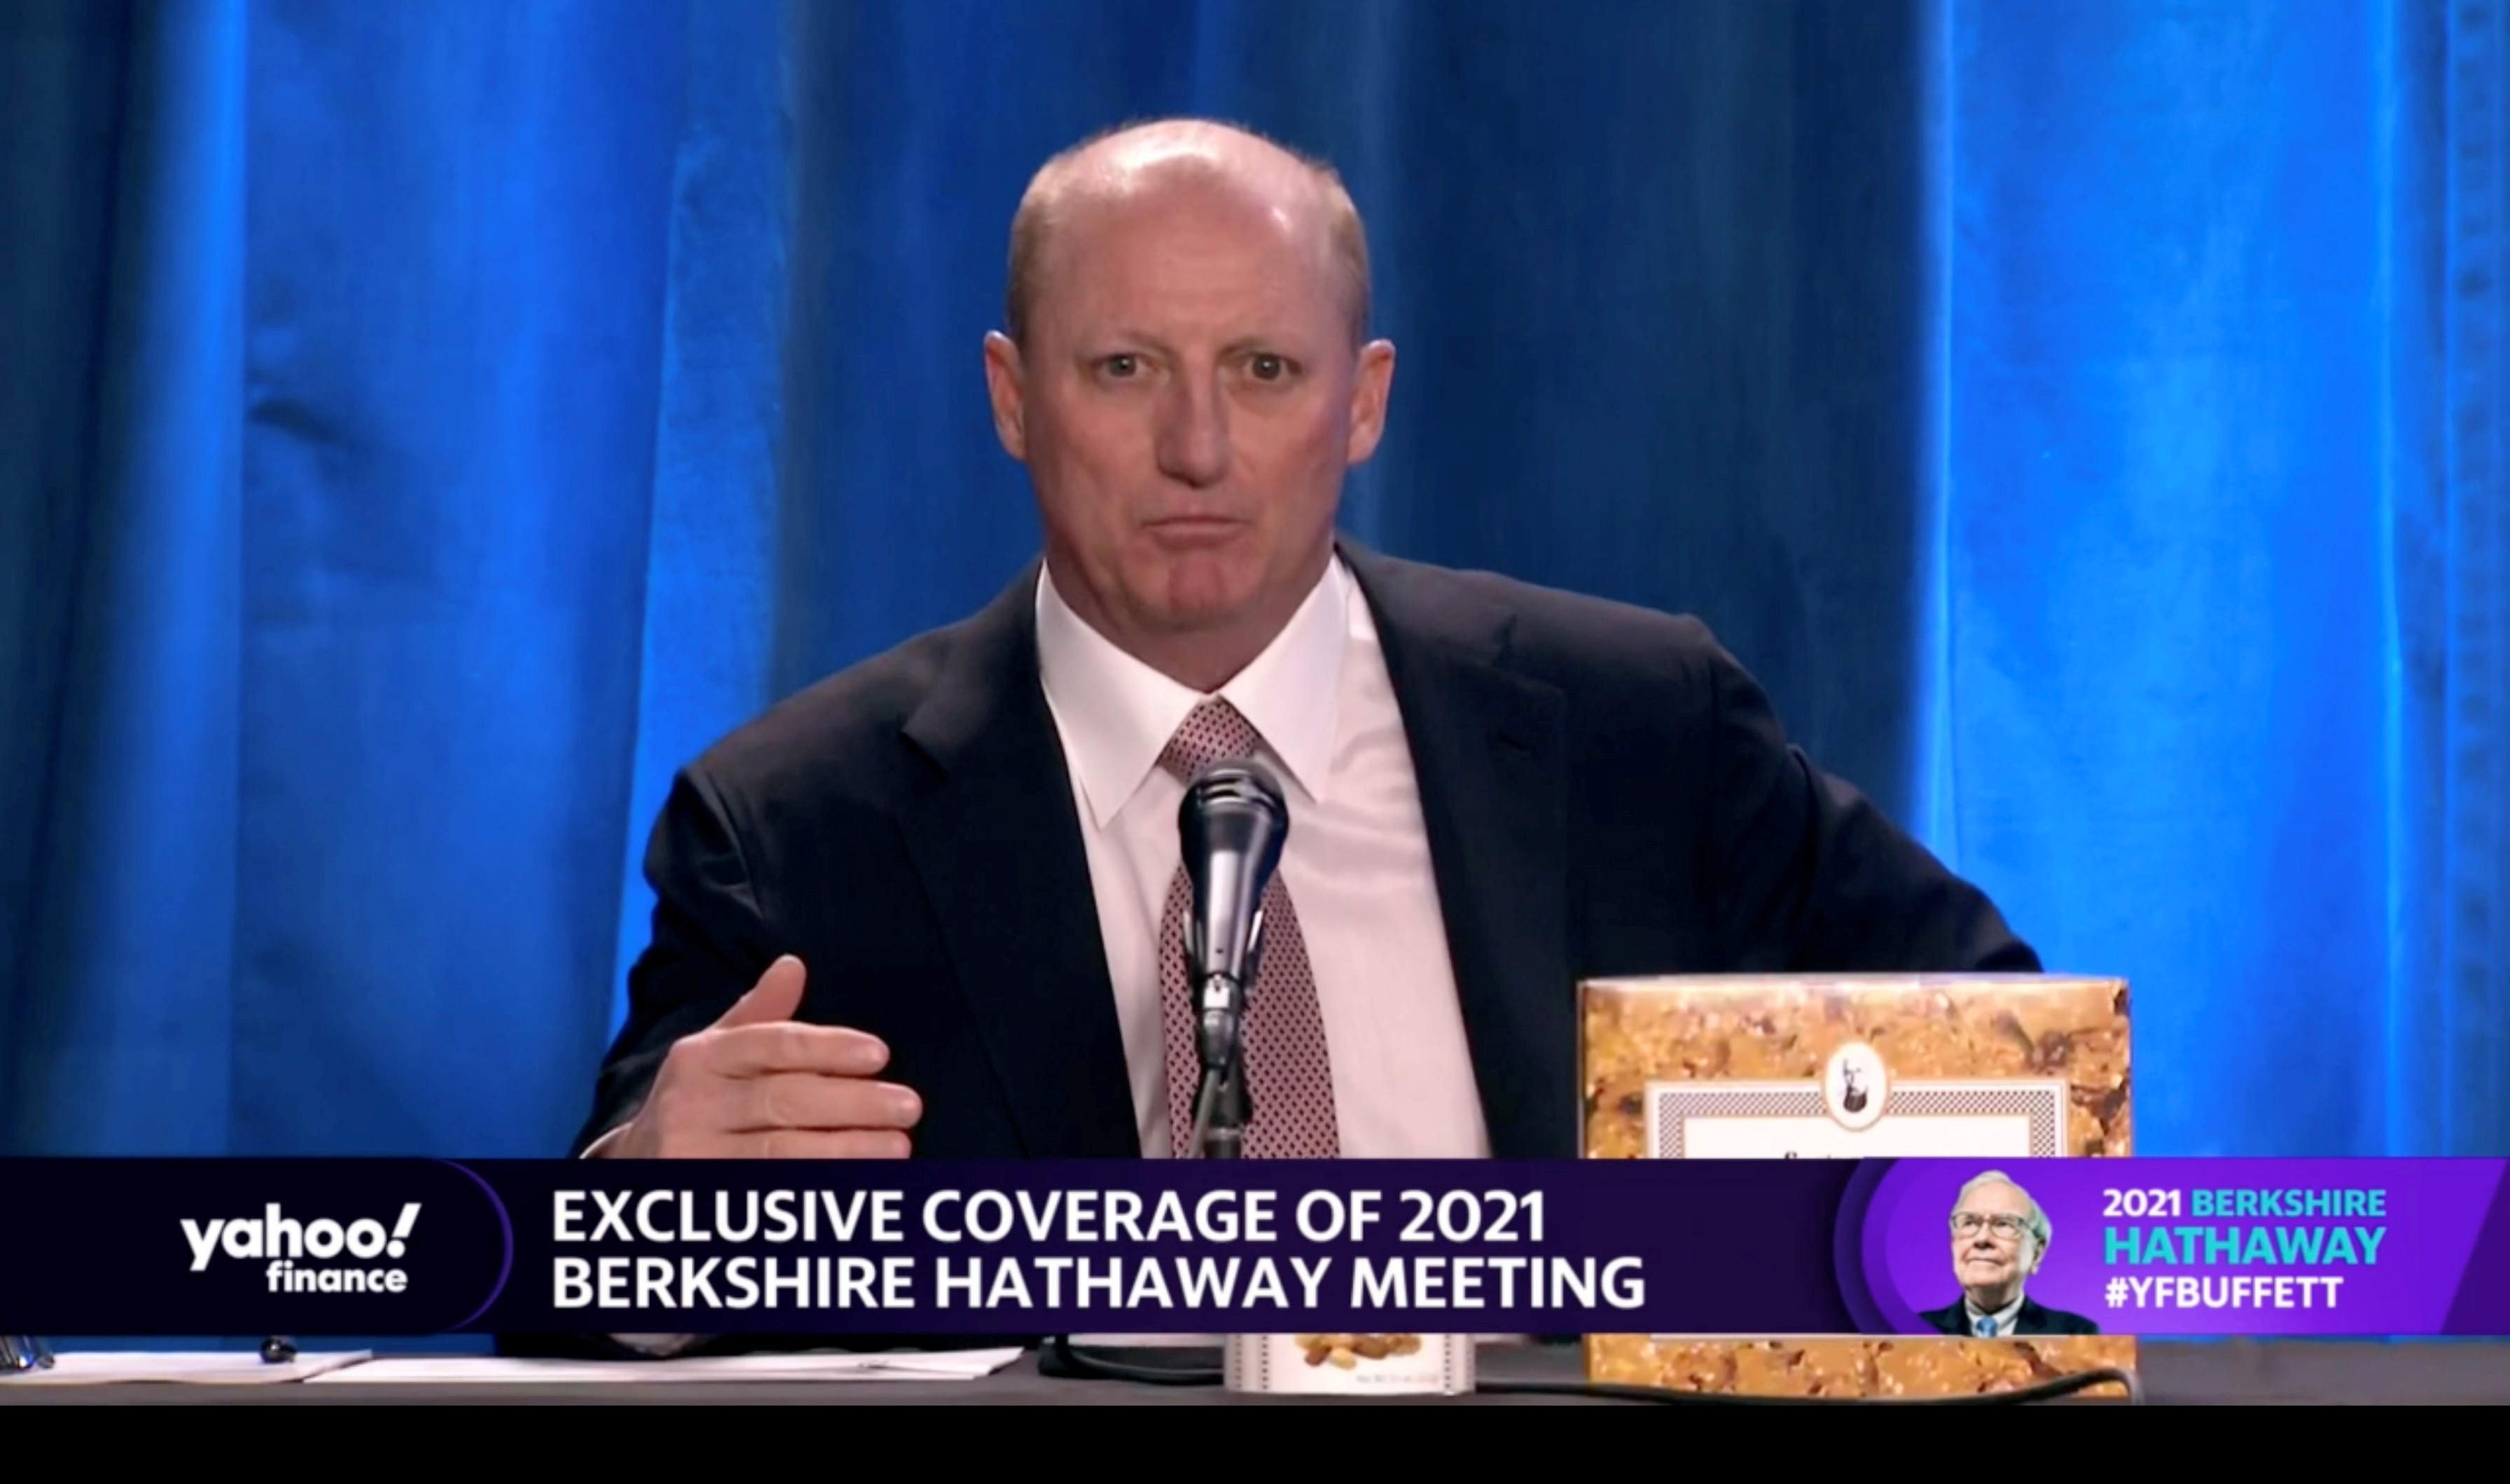 Berkshire Hathaway's vice chairman Gregory Abel speaks at Berkshire's annual meeting, held virtually for a second year, in Los Angeles, California, U.S. May 1, 2021 in this screen grab taken from a live-stream video. Yahoo Finance/ Handout via REUTERS